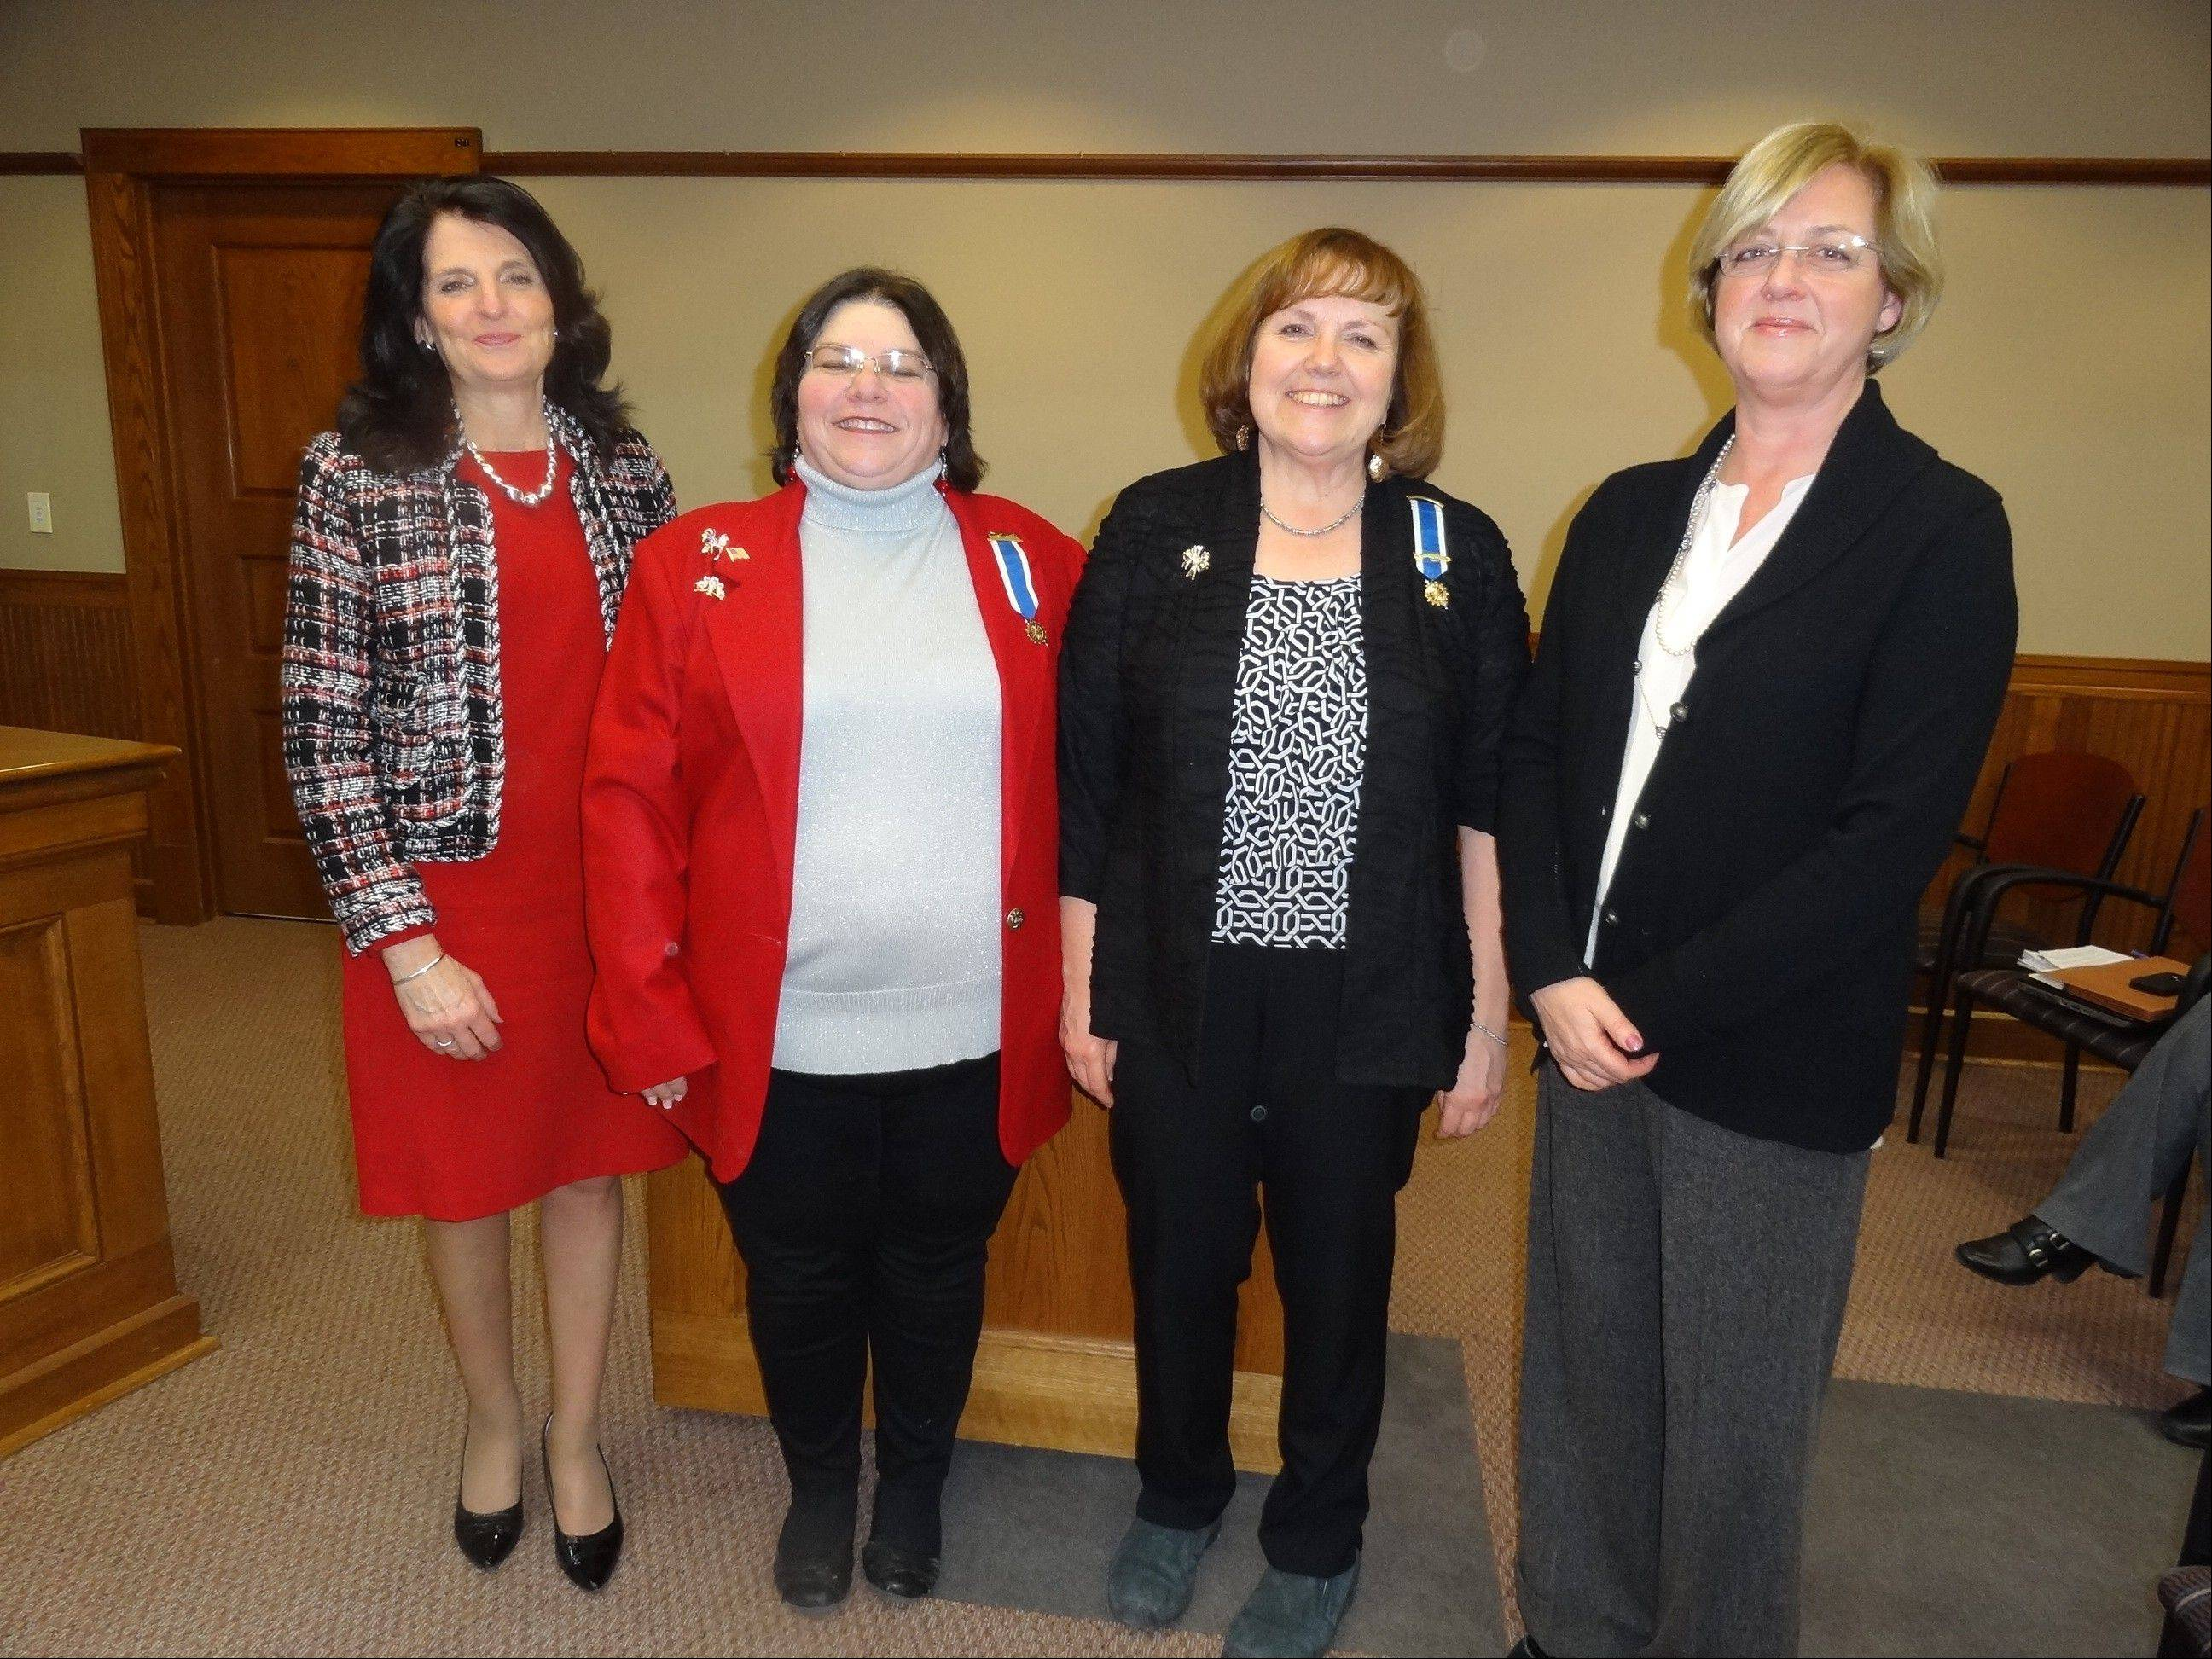 Village Board President Karen Darch, Signal Hill Chapter Regent Kathy Boyle, First Vice Regent Kathy Caseyand White House Board member Beth Raseman at the Jan. 13 Barrington Village Board meeting.